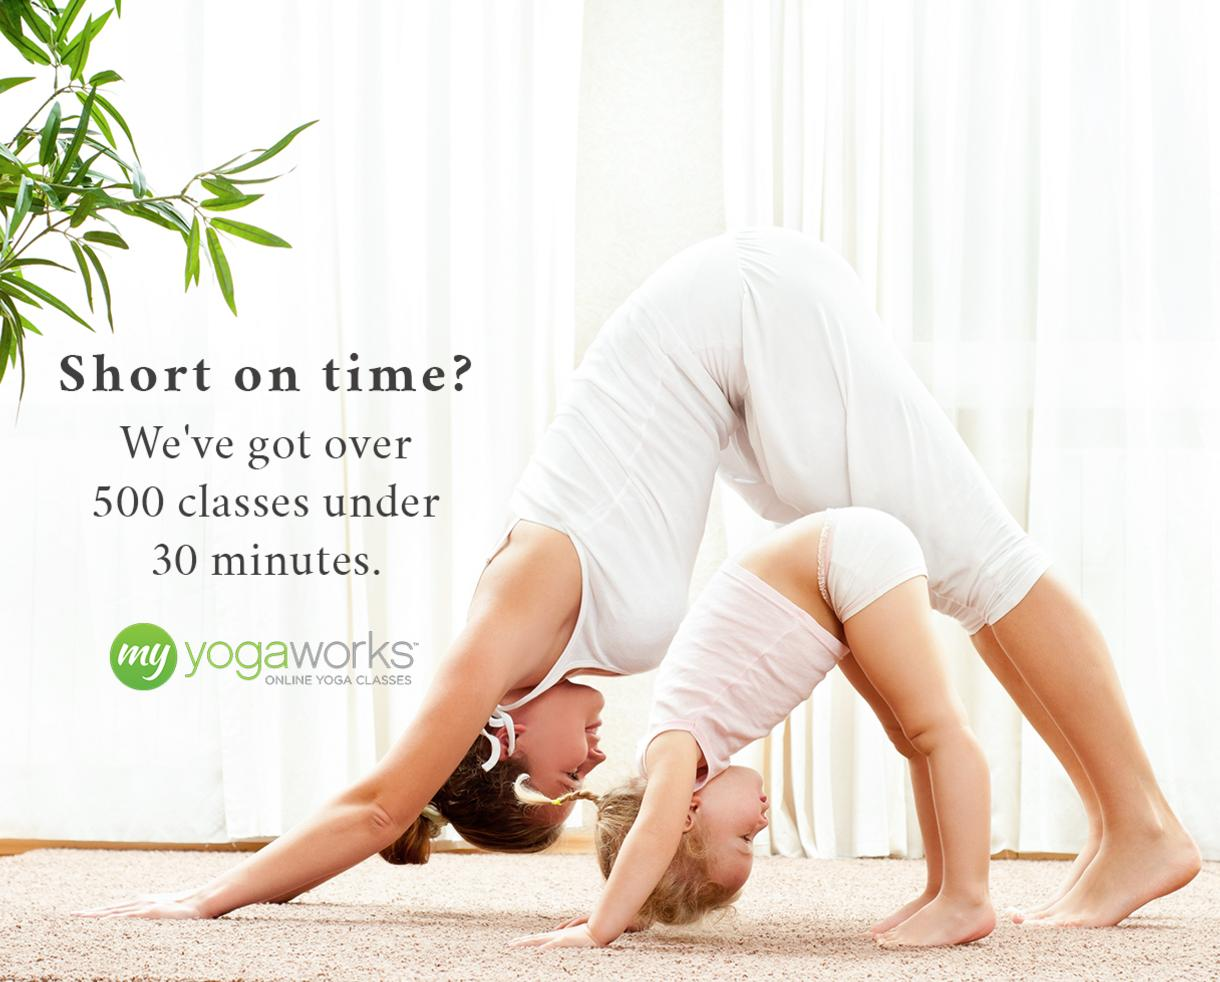 $39 for One Year of Unlimited Premium Online Yoga Classes From MyYogaWorks (79% Off)